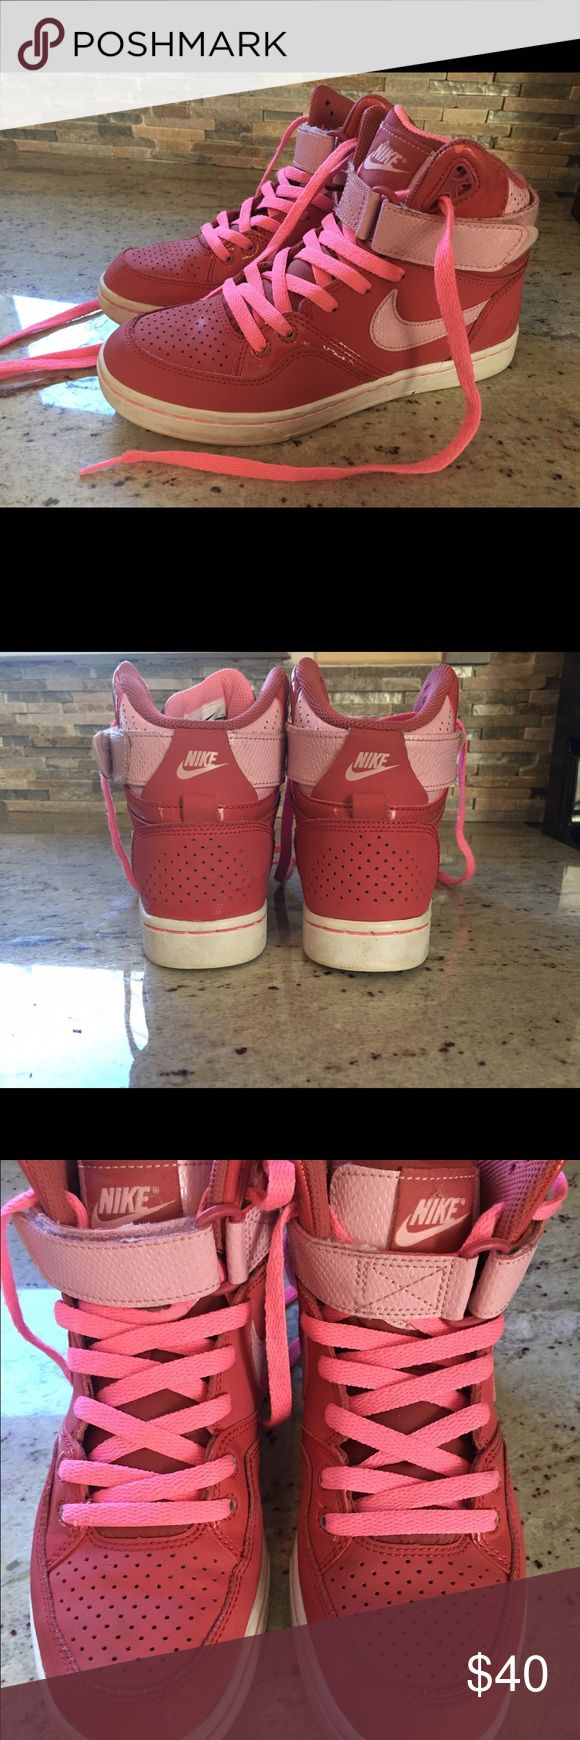 Nike sneakers - size 7 Excellent condition. Only worn a few times. Super cute! Nike Shoes Athletic Shoes